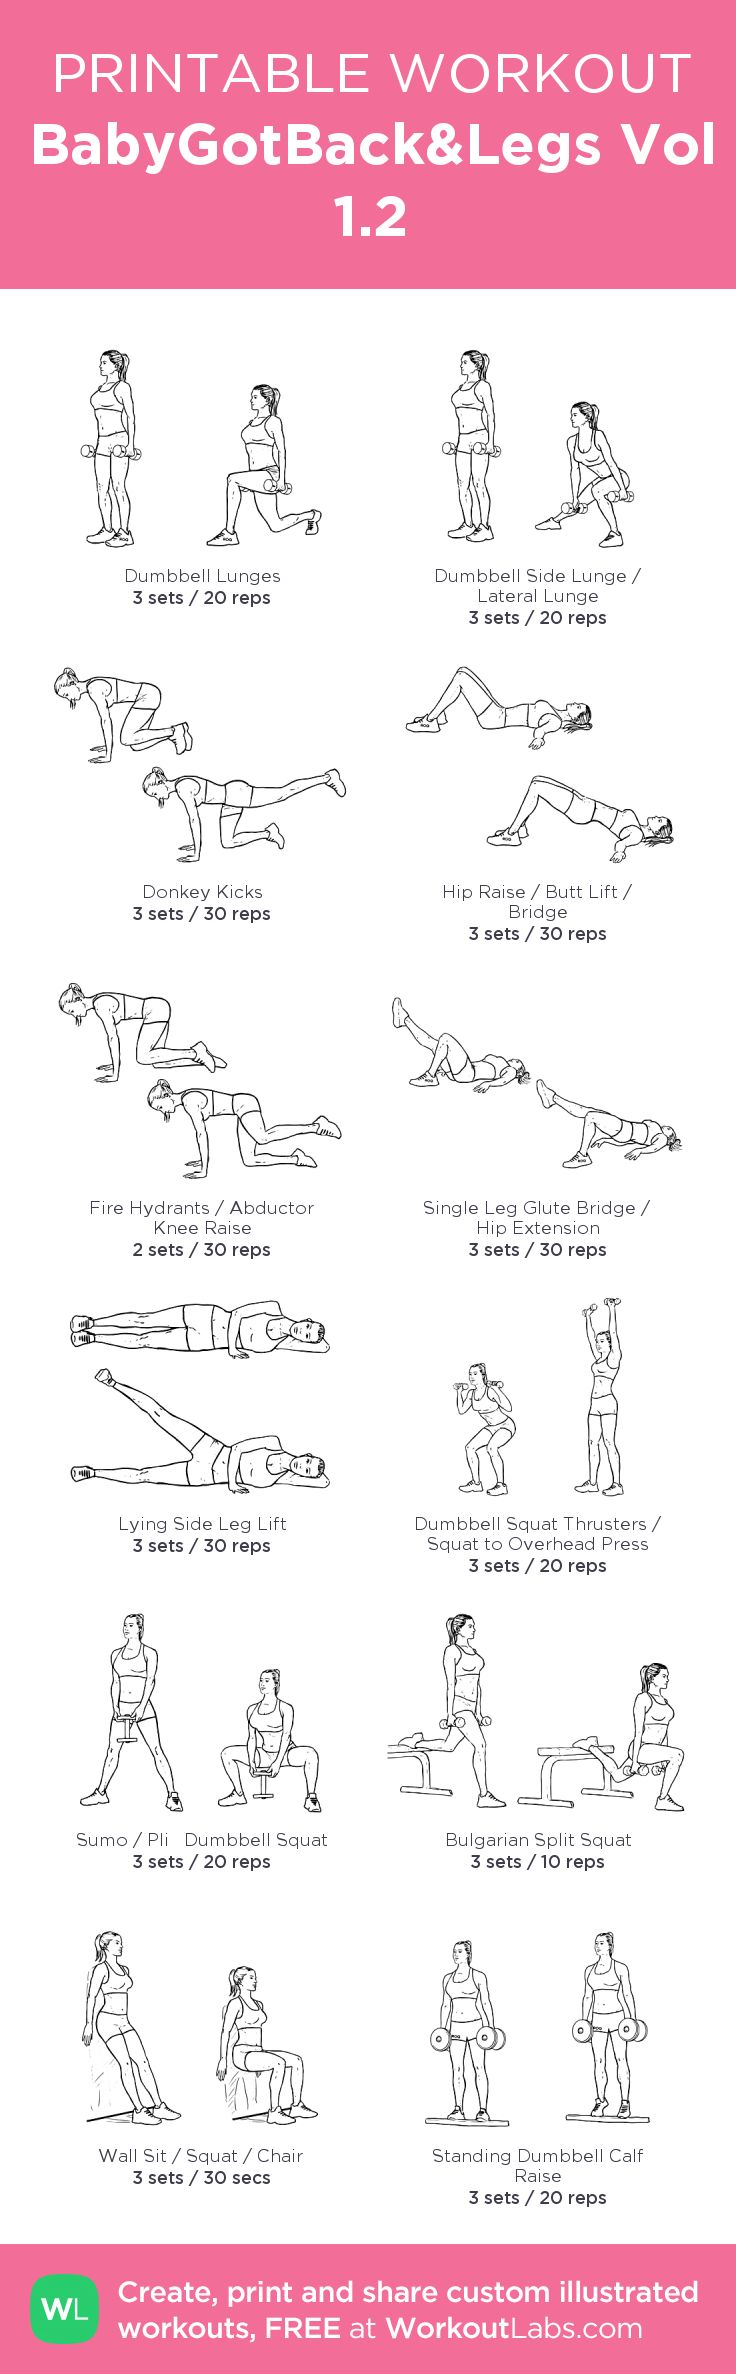 BabyGotBack&Legs Vol 1.2: my visual workout created at WorkoutLabs.com • Click through to customize and download as a FREE PDF! #customworkout *NOTES: Time needed - about 1h35min. Work-out is about 1h10 mins w/ 60 sec breaks between a series of 6 sets, plus suggested 5 min warm-up and 15-20 min stretch/cool-down EDIT: Fire Hydrants should be 3 sets not 2.